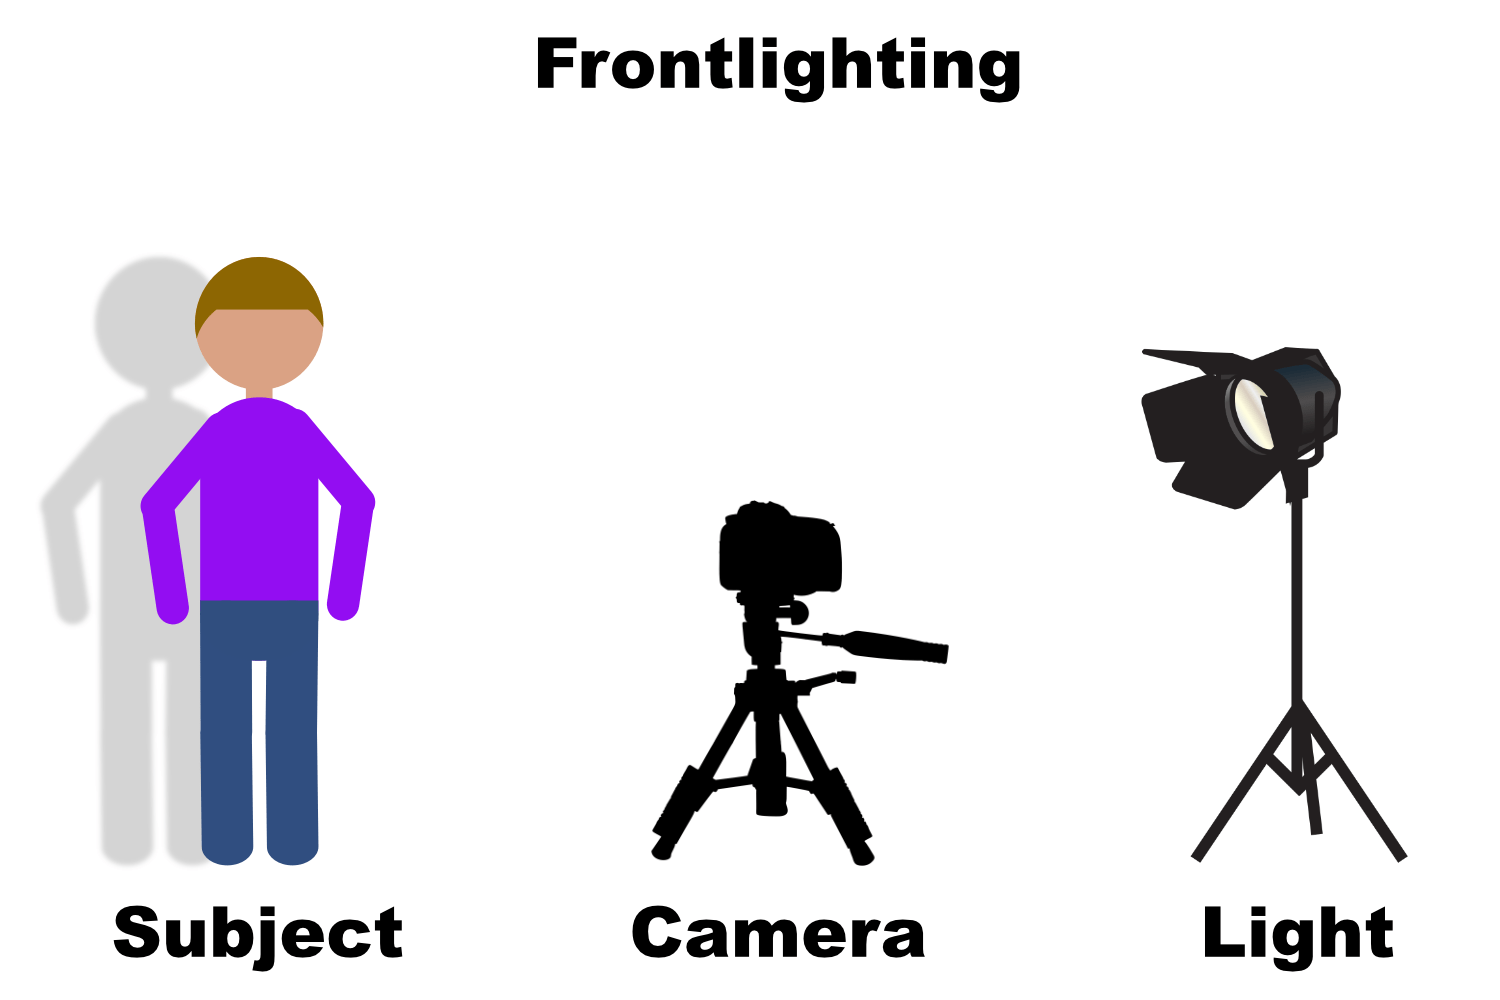 frontlighting diagram